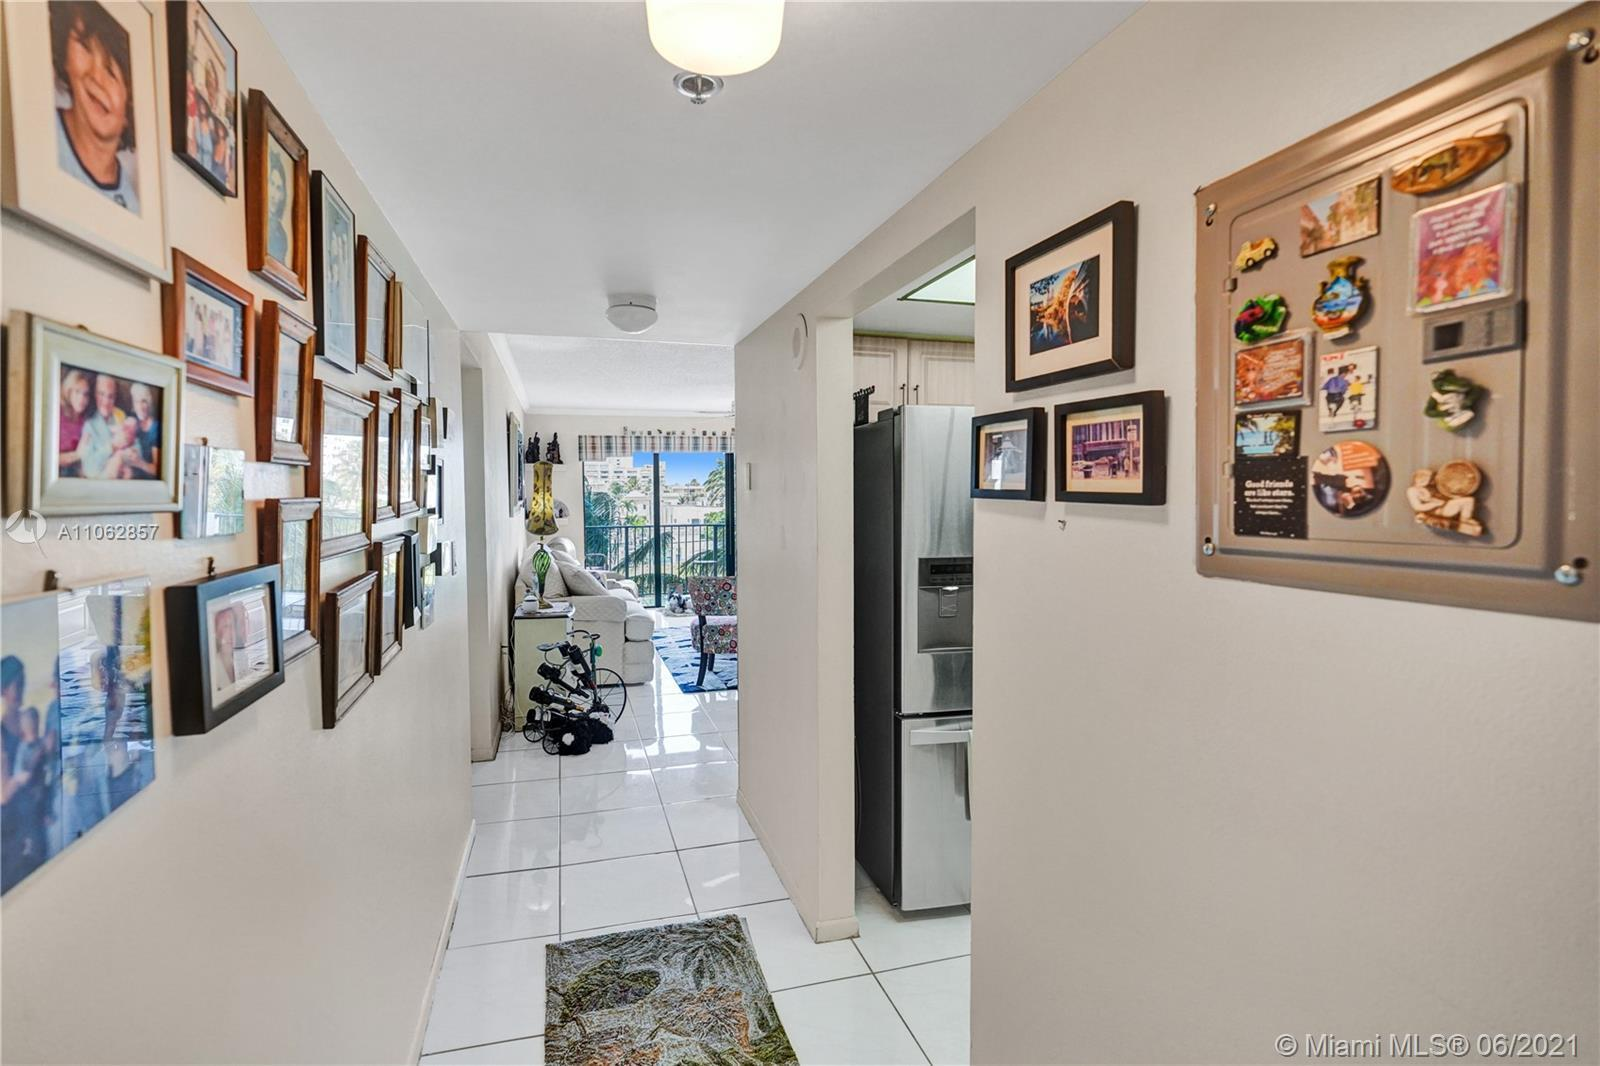 Charming one bedroom one bath unit.  New impact glass doors and windows installed July 2021, beautif